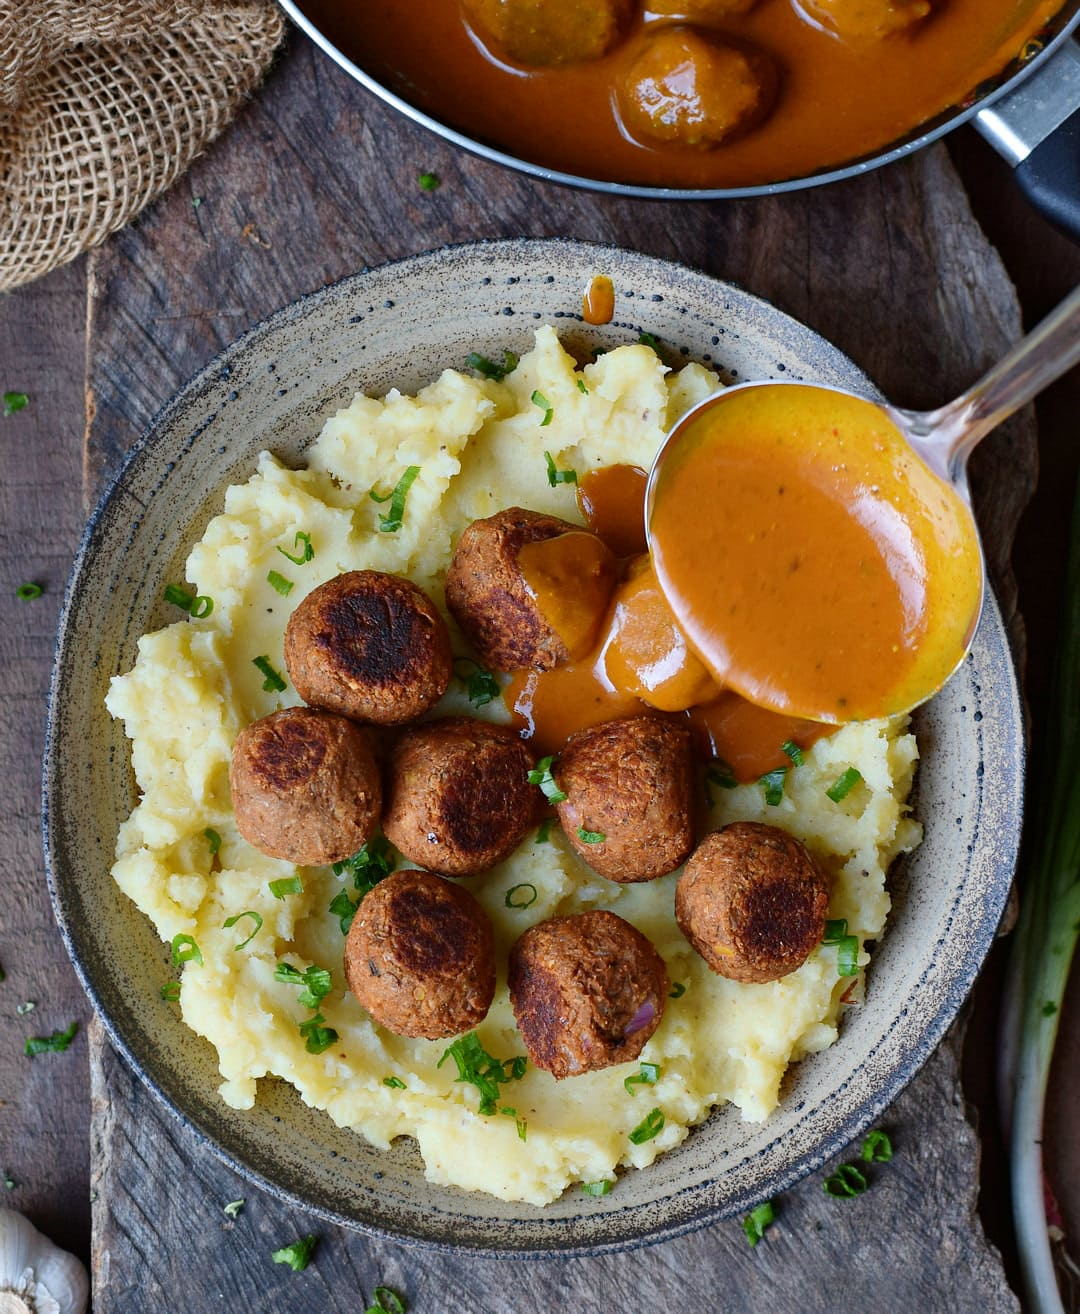 Vegan meatballs with gravy drizzle over mashed potatoes